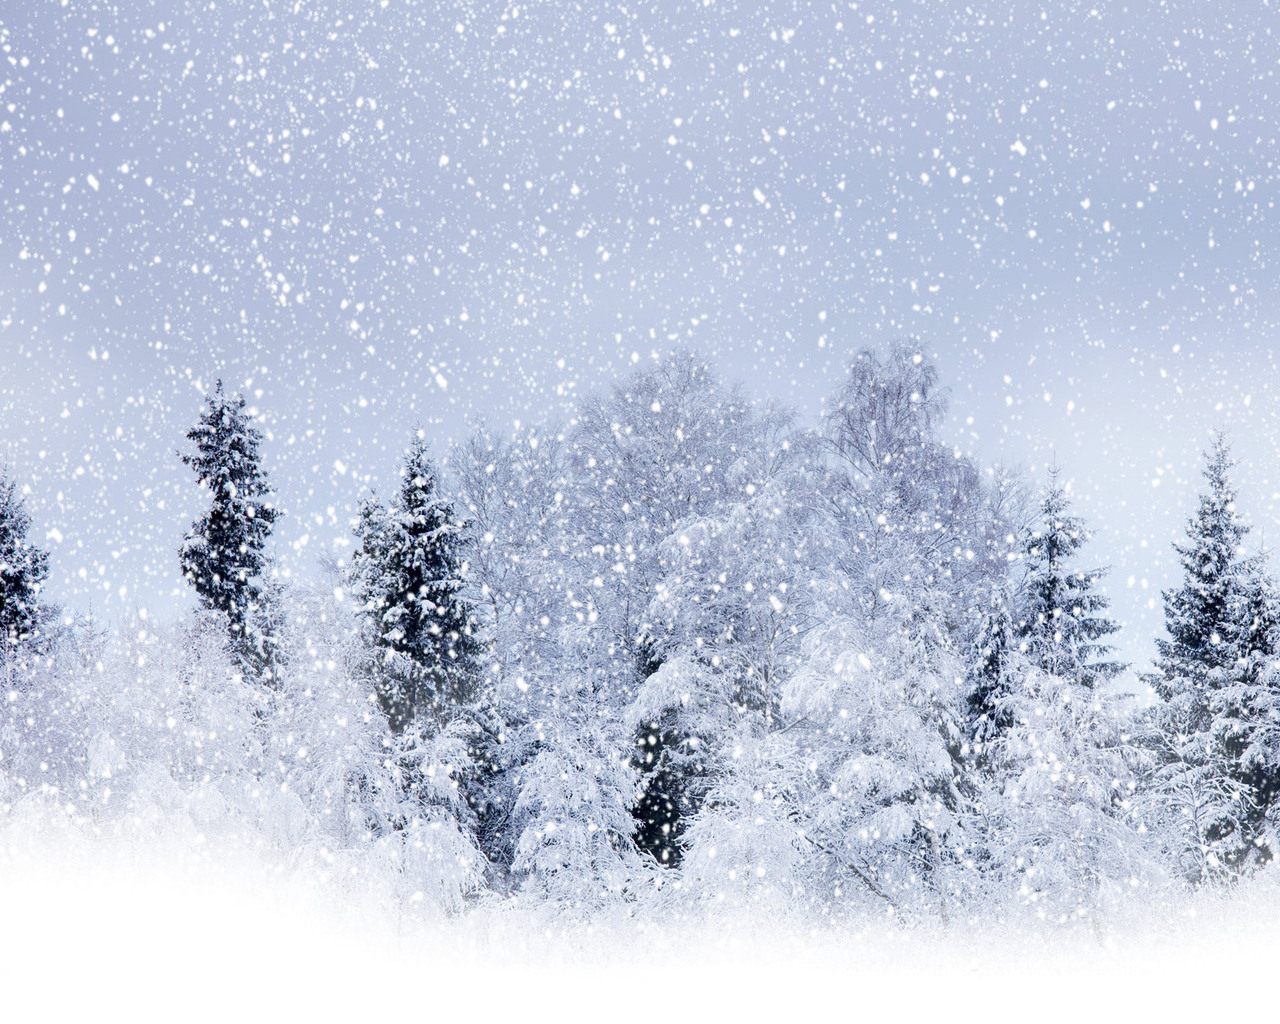 Beautiful Wallpapers Snowfall Wallpaper